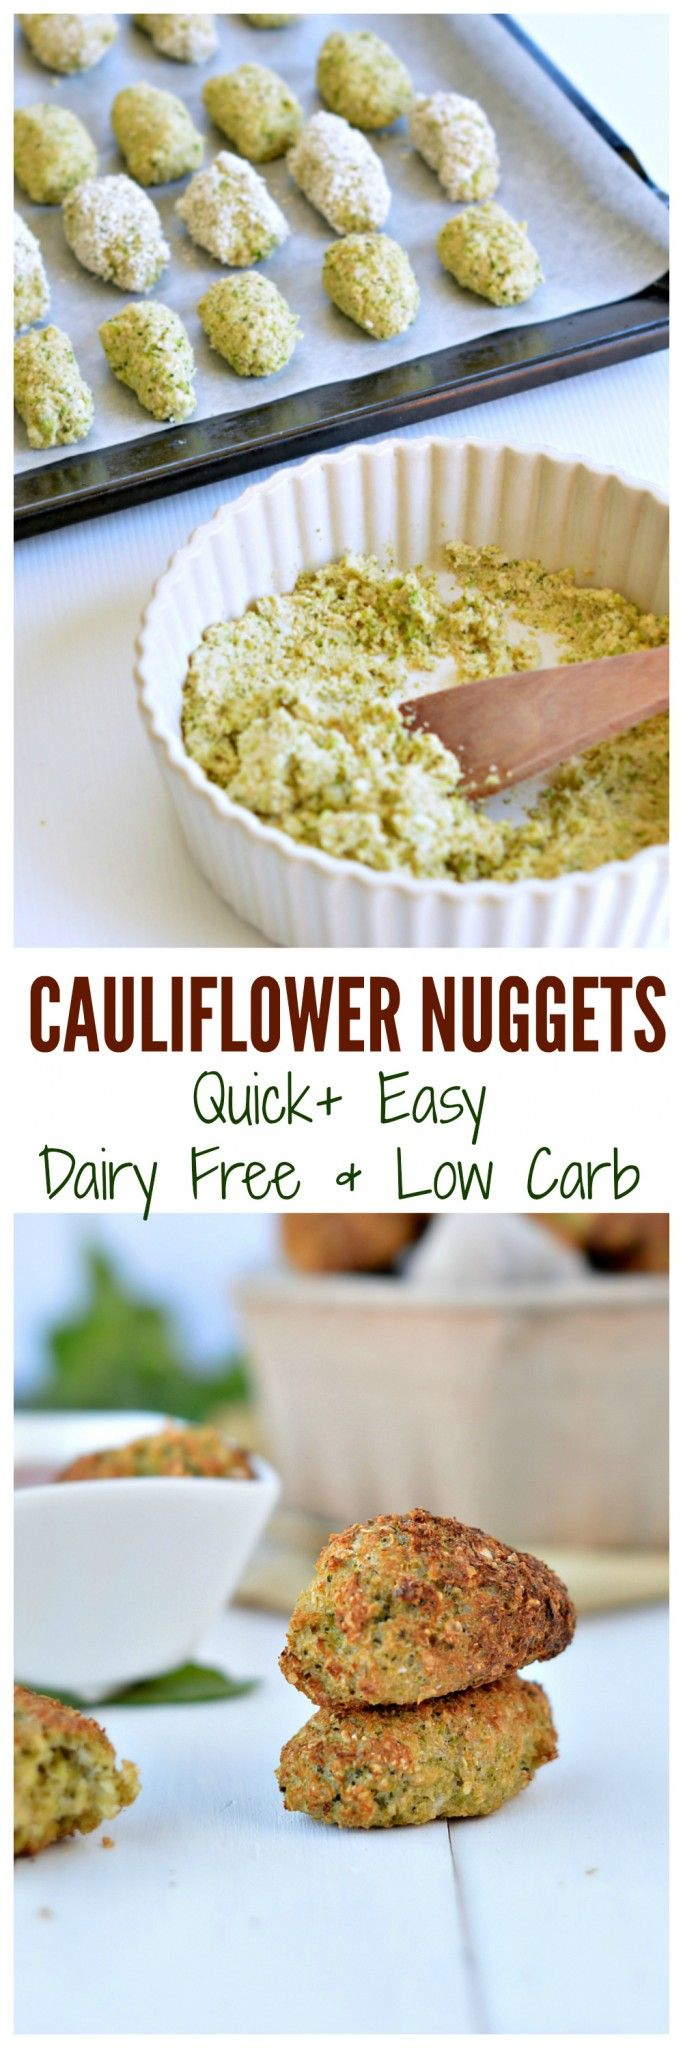 Those Baked cauliflower nuggets take 10 minutes to prepare, 20 minutes to bake and are super heathy as finger food dinner, appetizers or for kids lunchbox. It is moist and crispy! Dairy free and low carb with a gluten free and paleo recipe option.